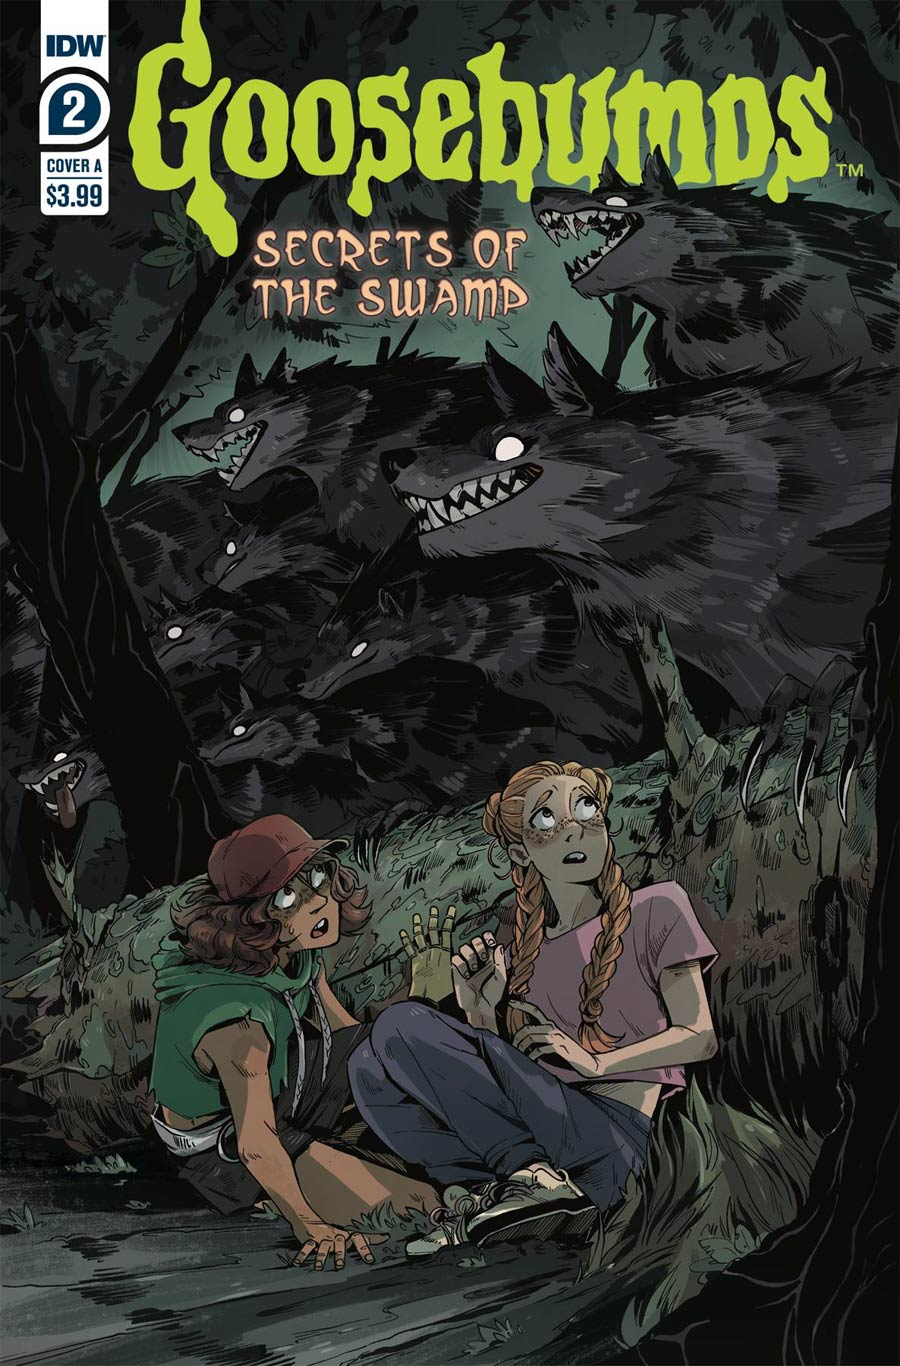 Goosebumps Secrets Of The Swamp #2 Cover A Regular Bill Underwood Cover